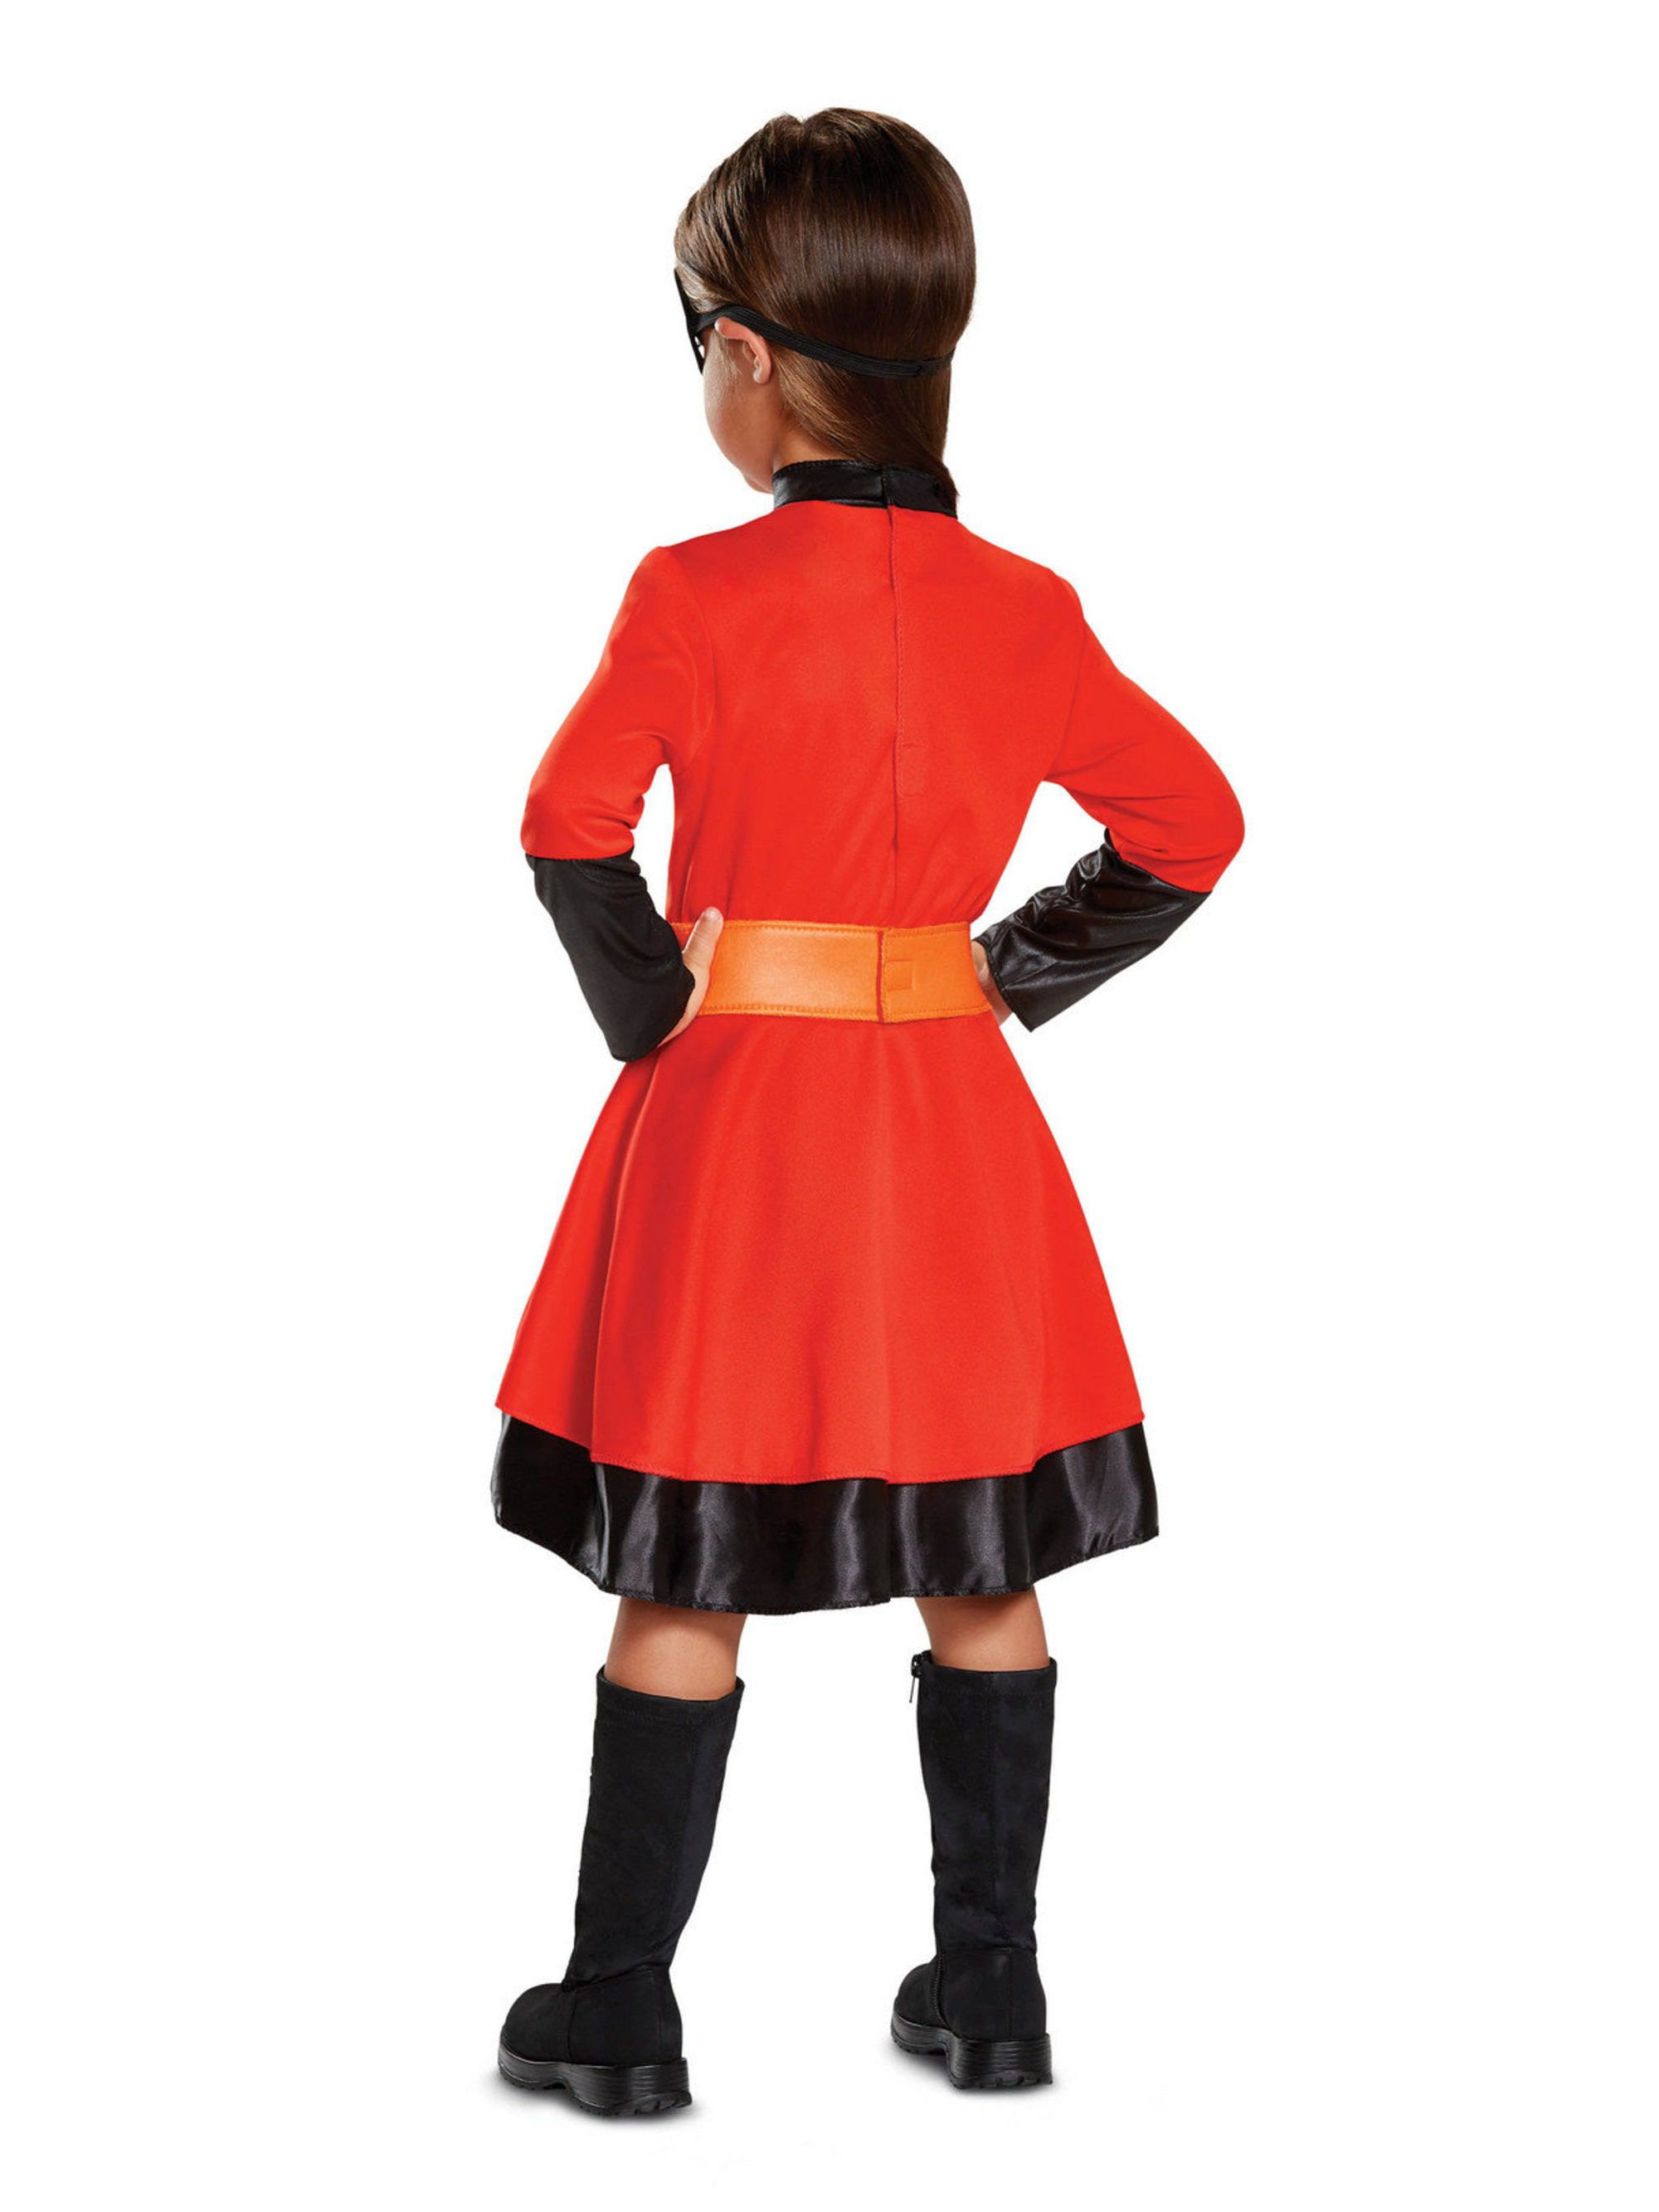 Larger View of Product; Larger View of Product  sc 1 st  Wholesale Halloween Costumes & Incredibles 2: Classic Child Violet Costume - Girls Costumes for ...